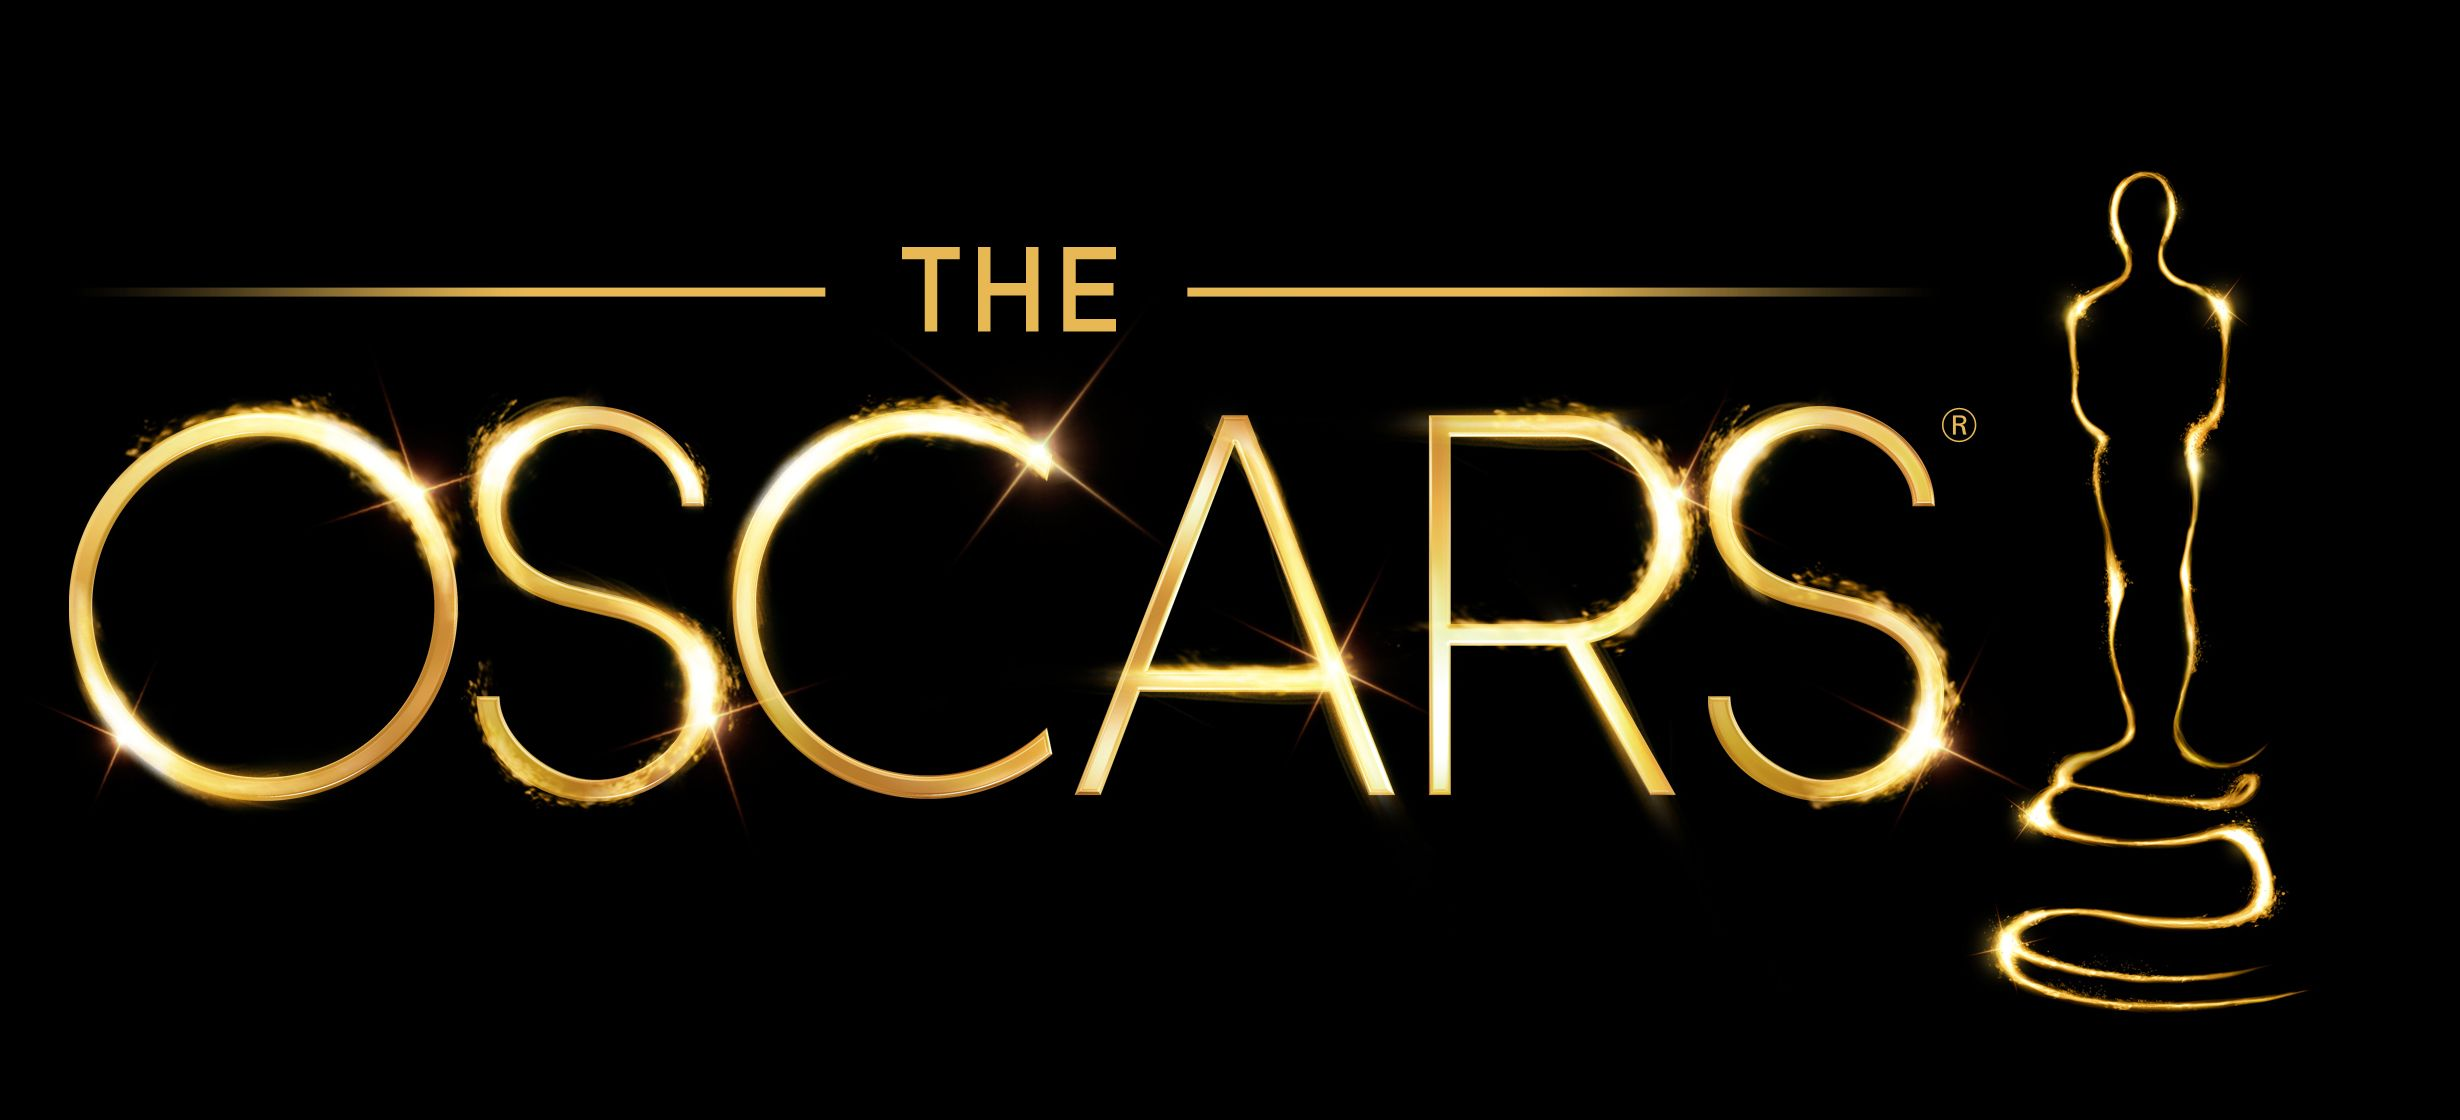 The_Oscars_Nominations_Will_Be20140107173812